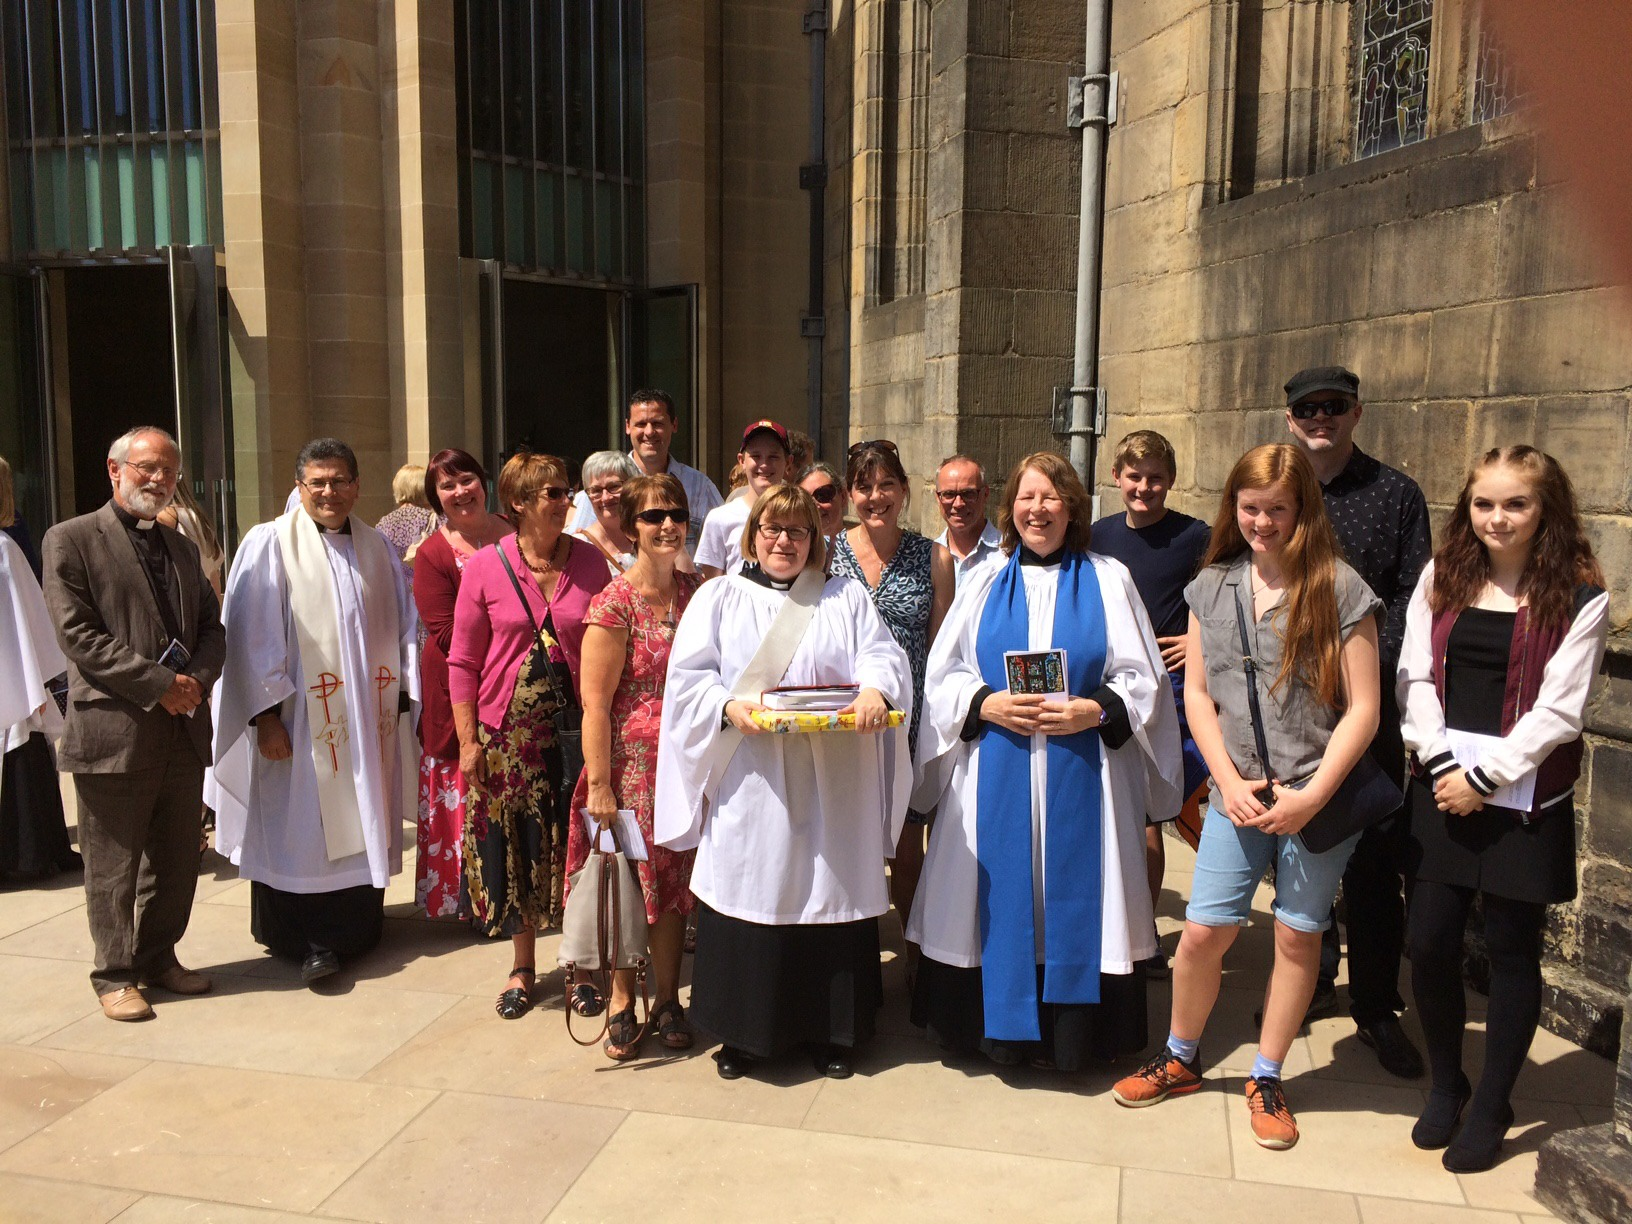 Claire Williams ordination 1